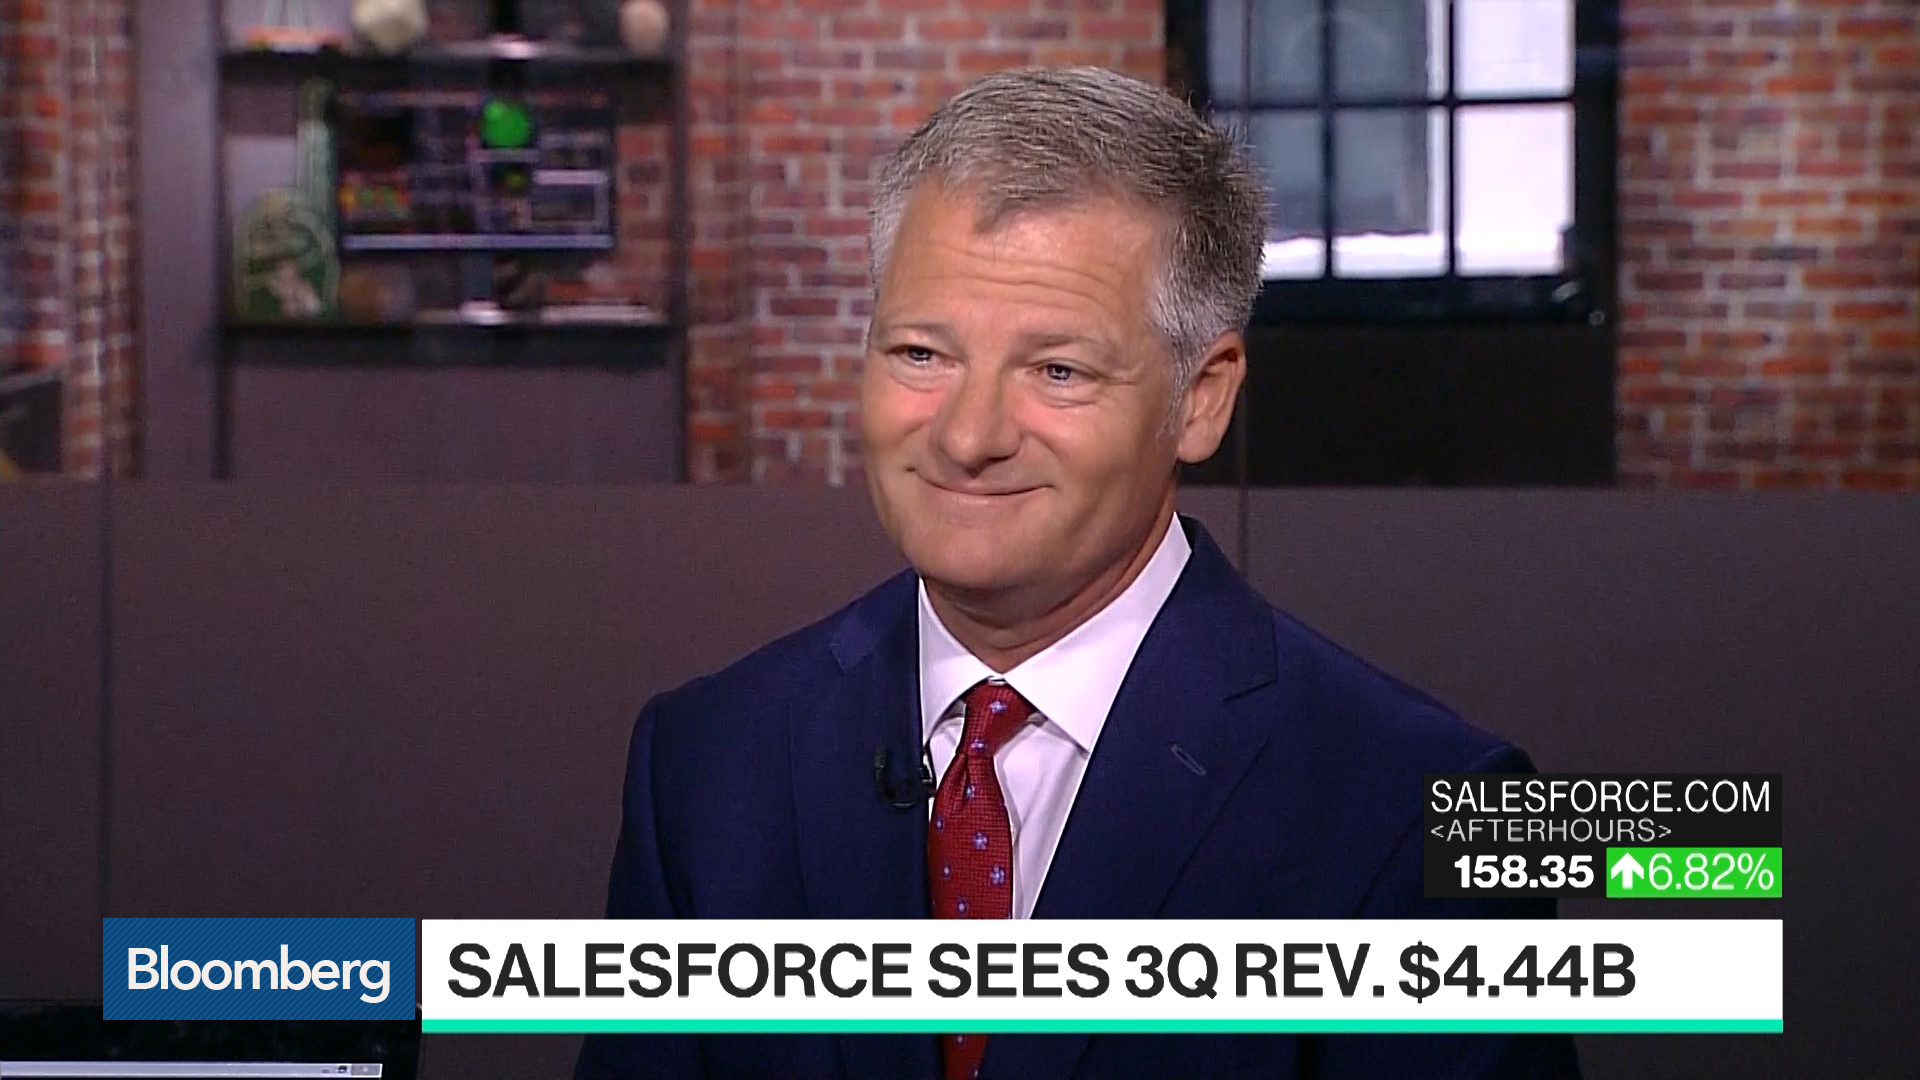 Salesforce Has to Keep Innovating Own Products: Analyst Pat Walravens